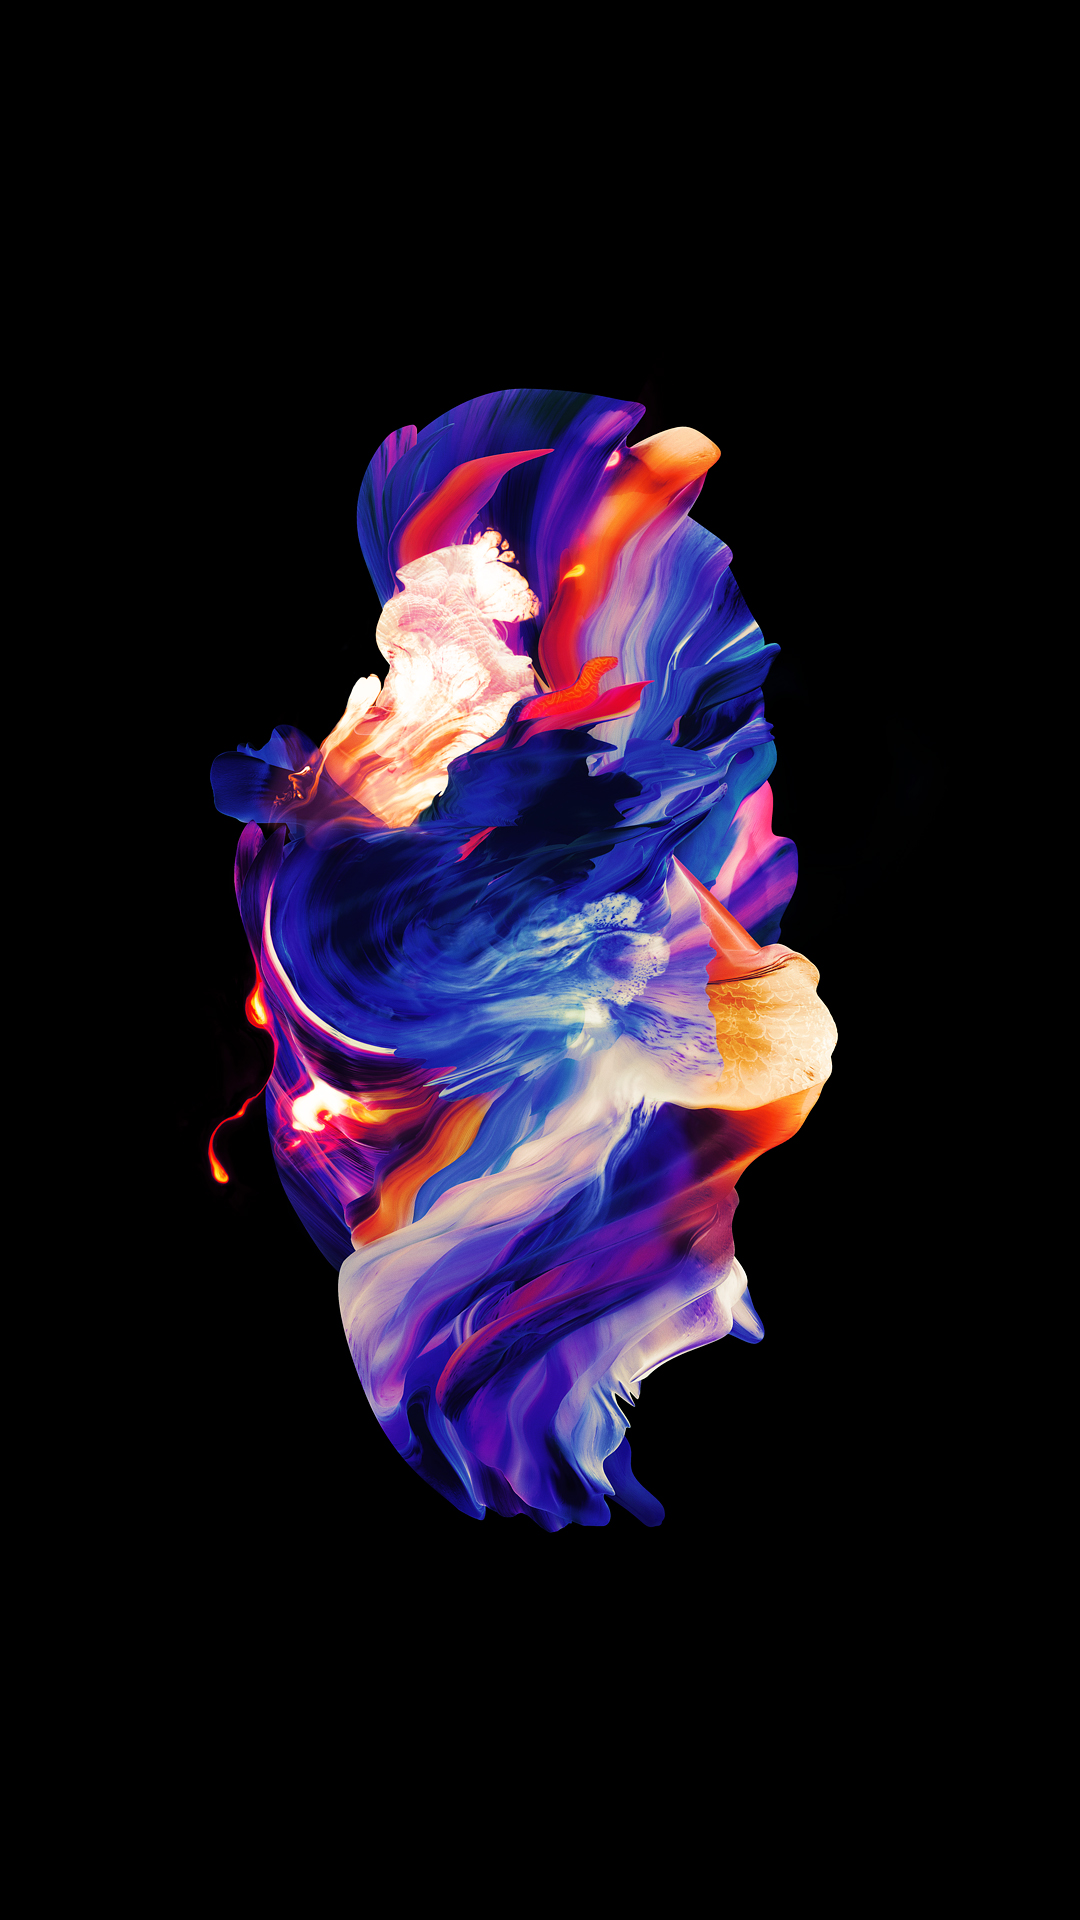 Download all the OnePlus 5 wallpapers in 4K   Android 1080x1920